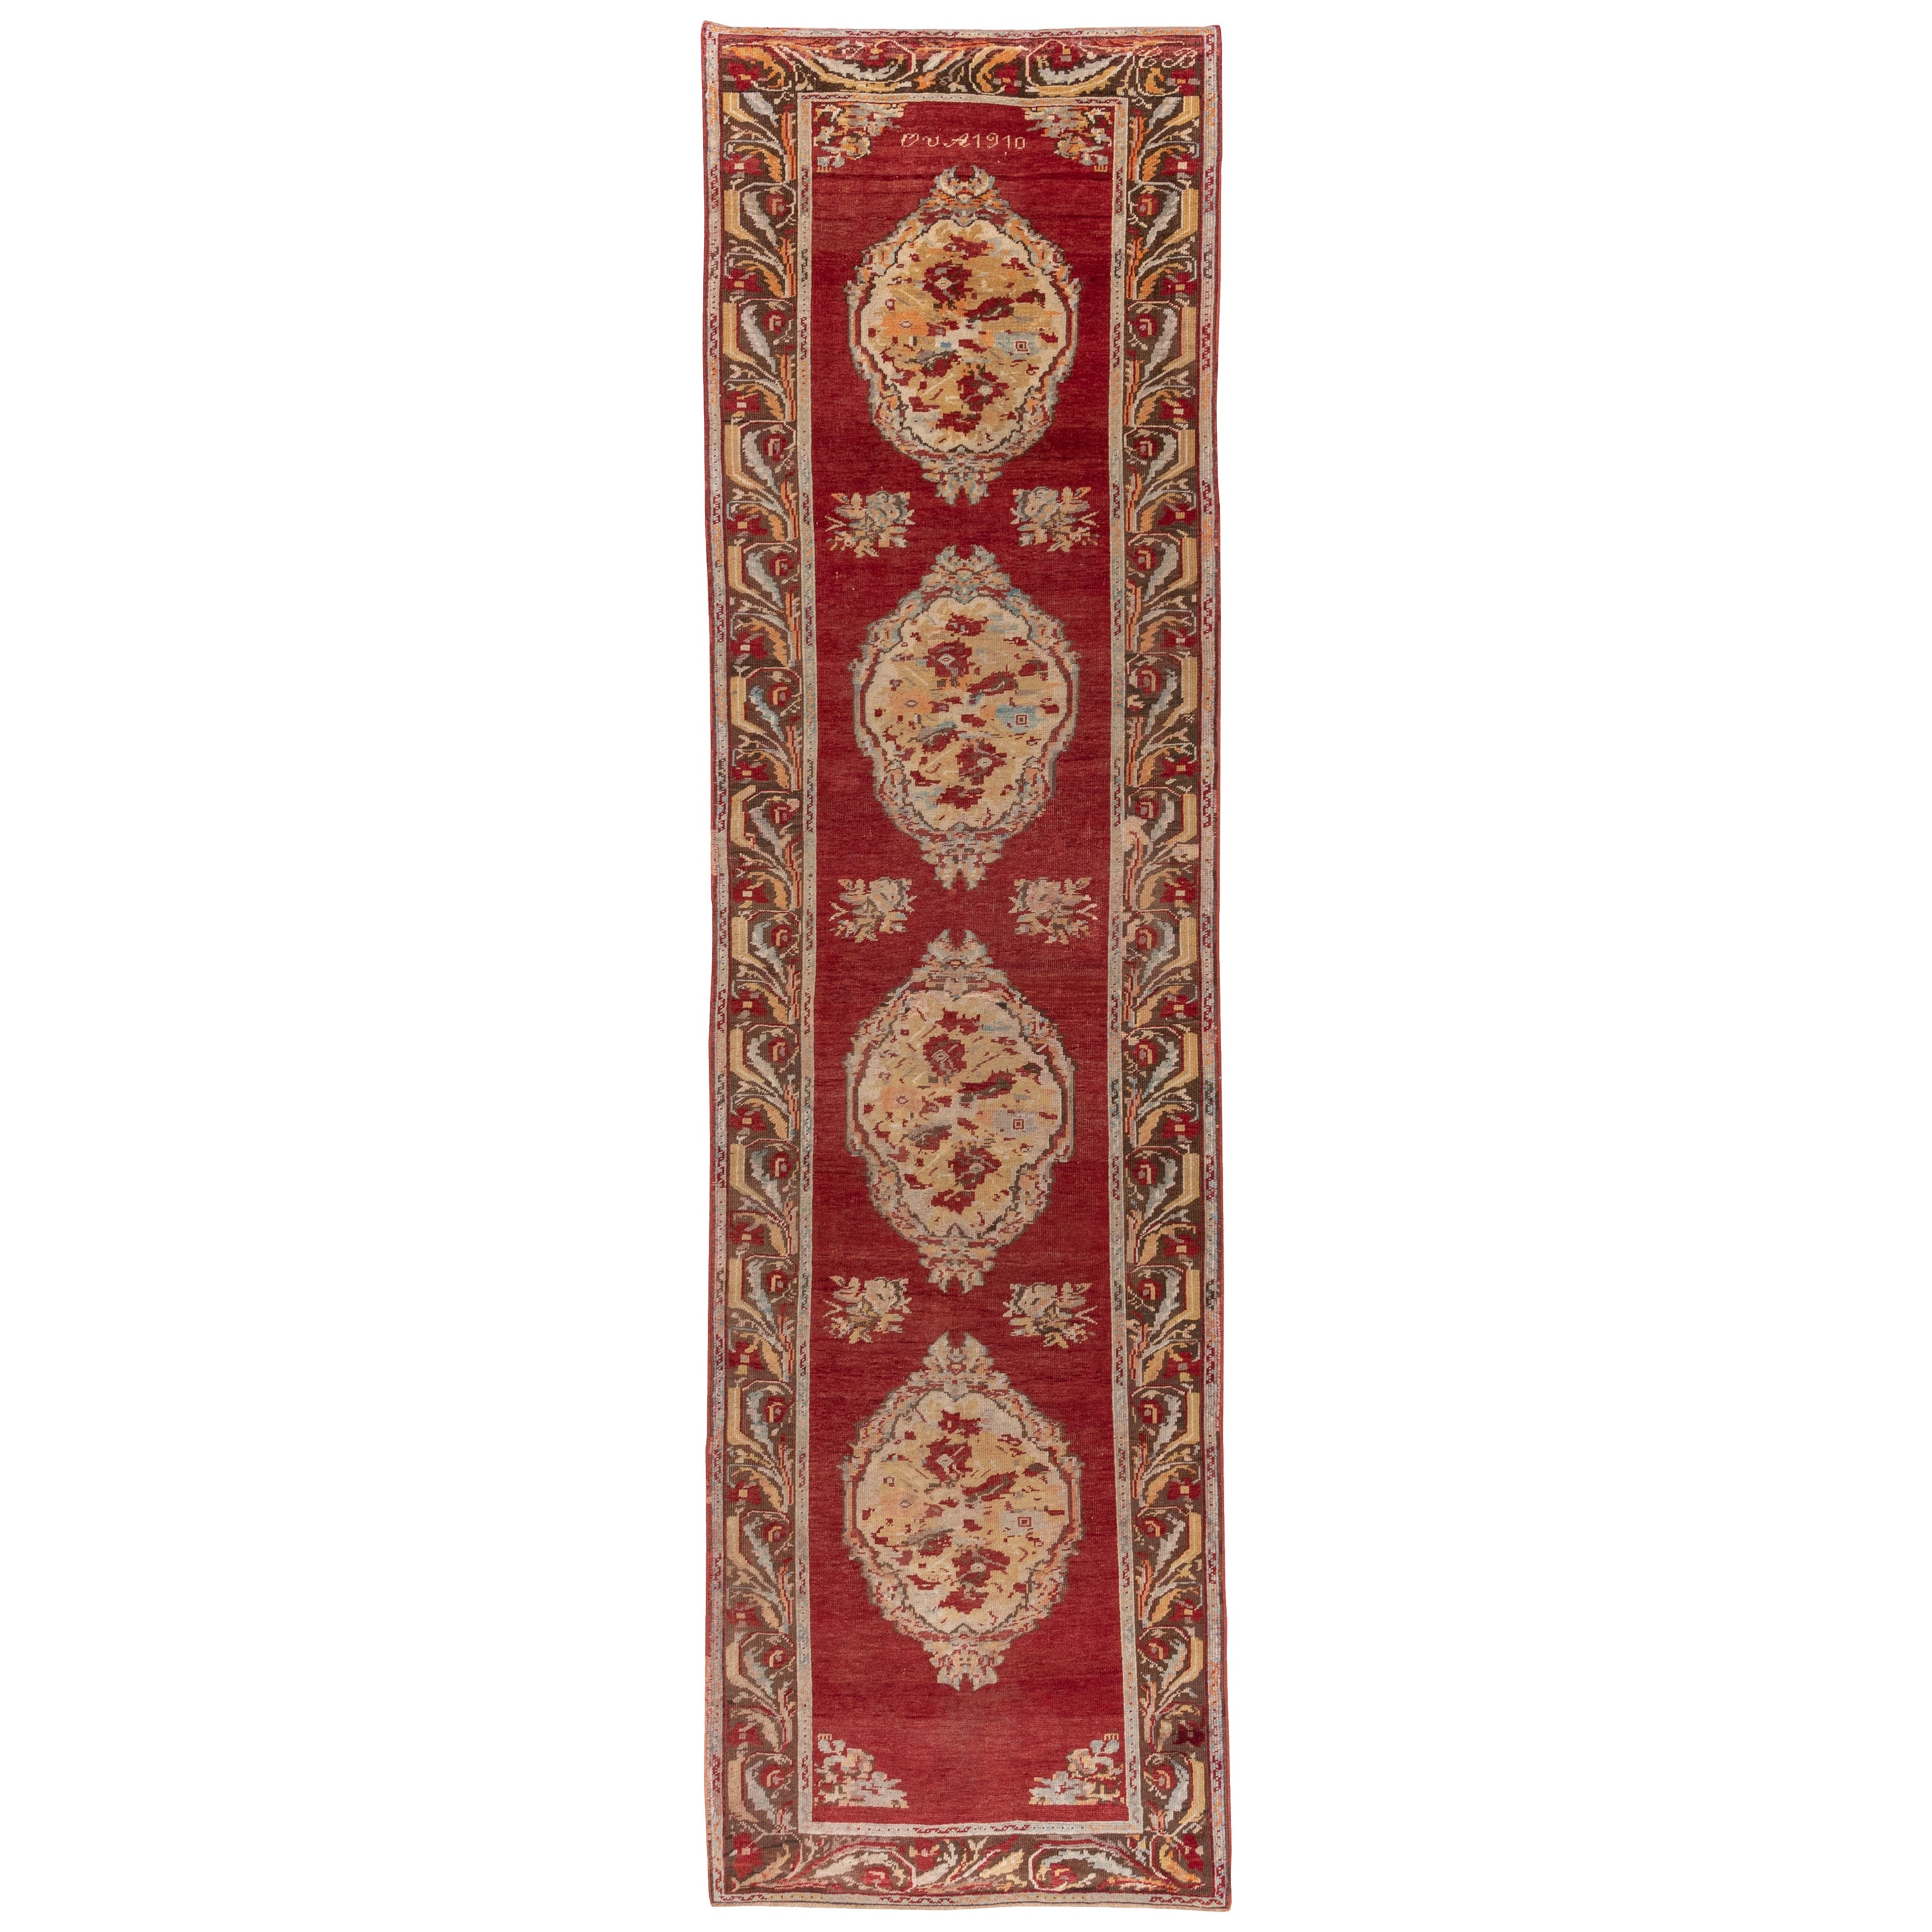 Antique Red Turkish Oushak Runner